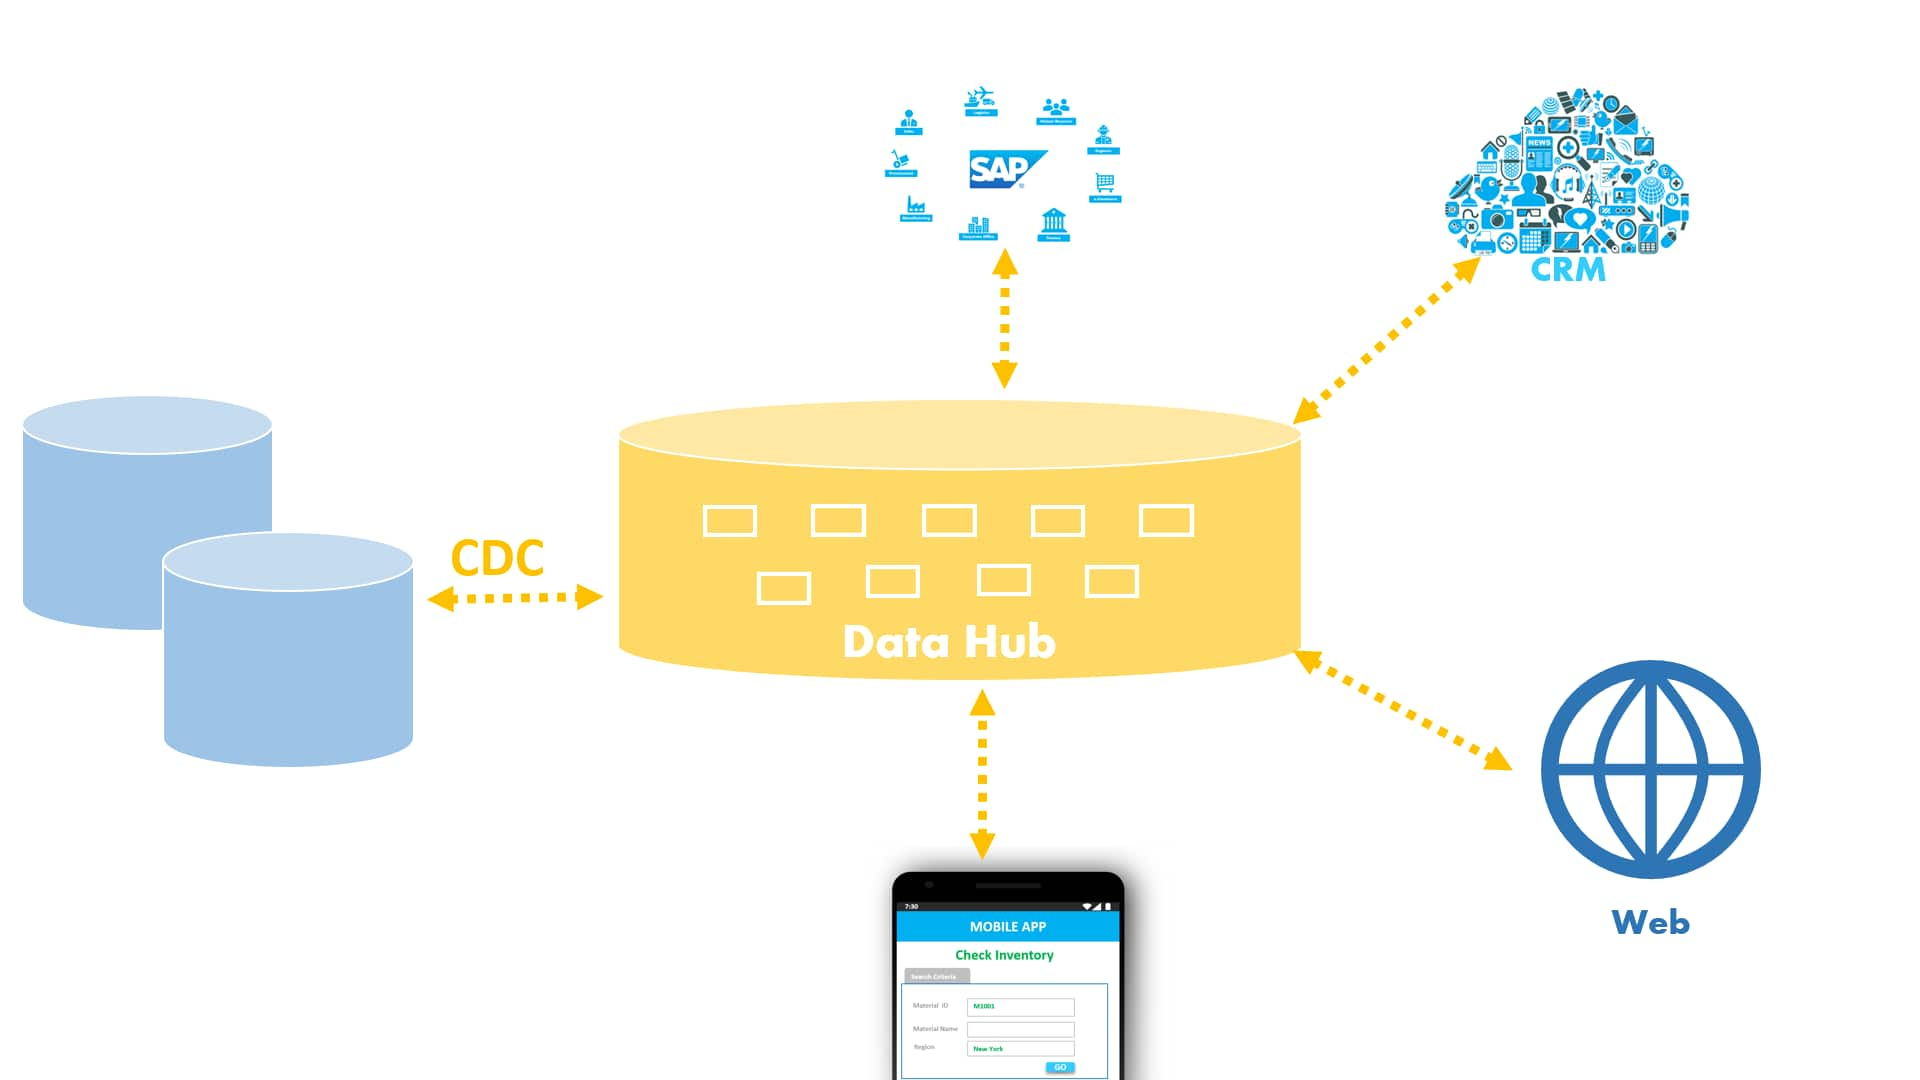 Real-time exchanges in a Data Hub Architecture with CDC by Stambia